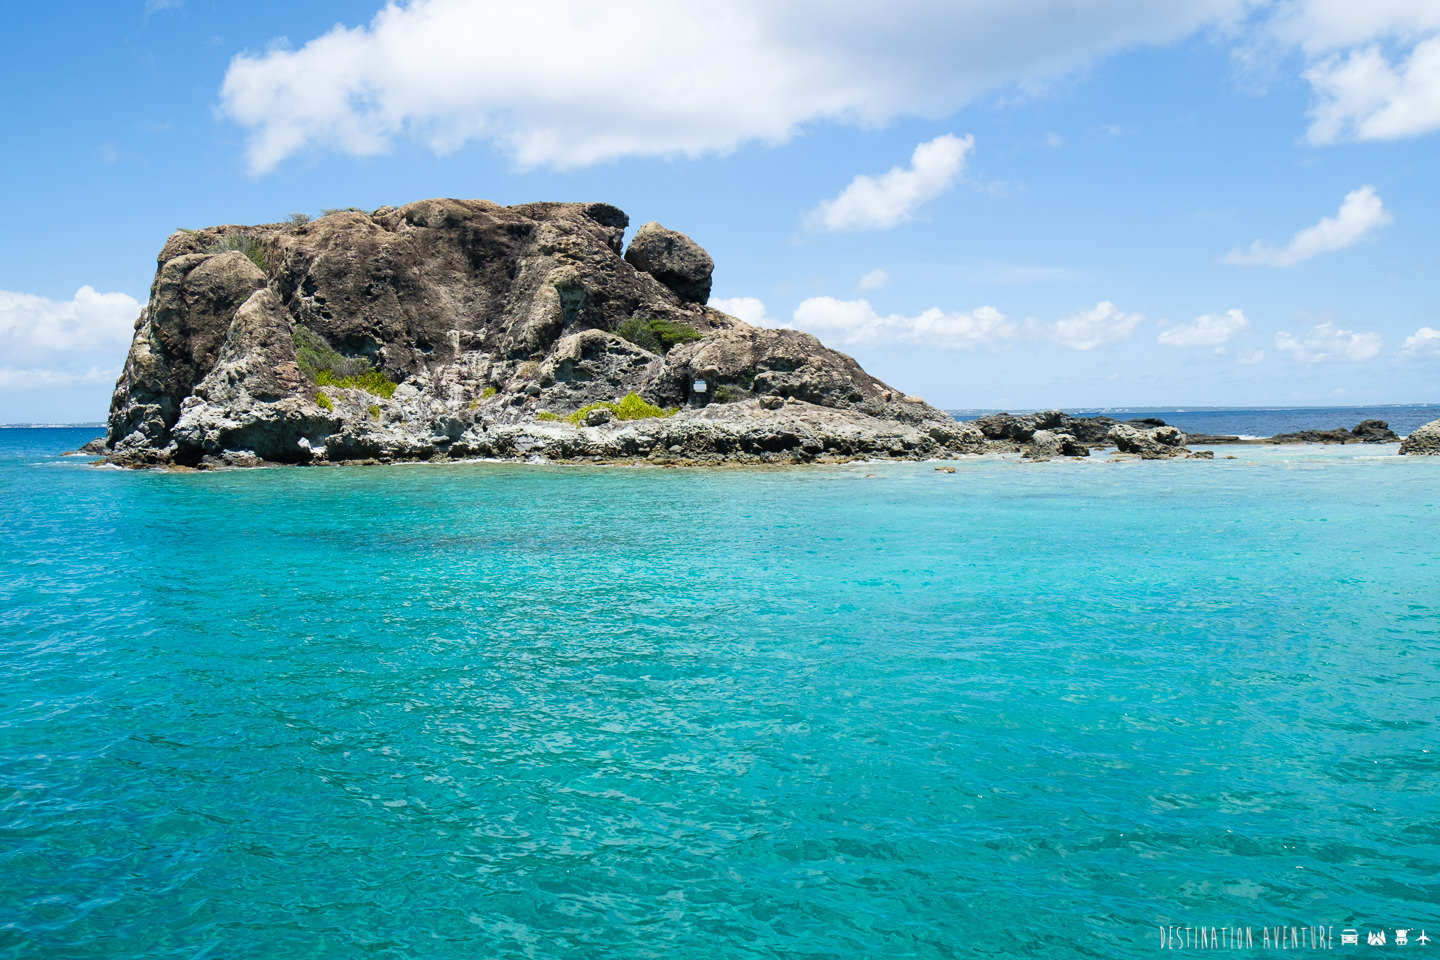 Boat trip around St. Maarten to discover beaches and paradisiacal islands